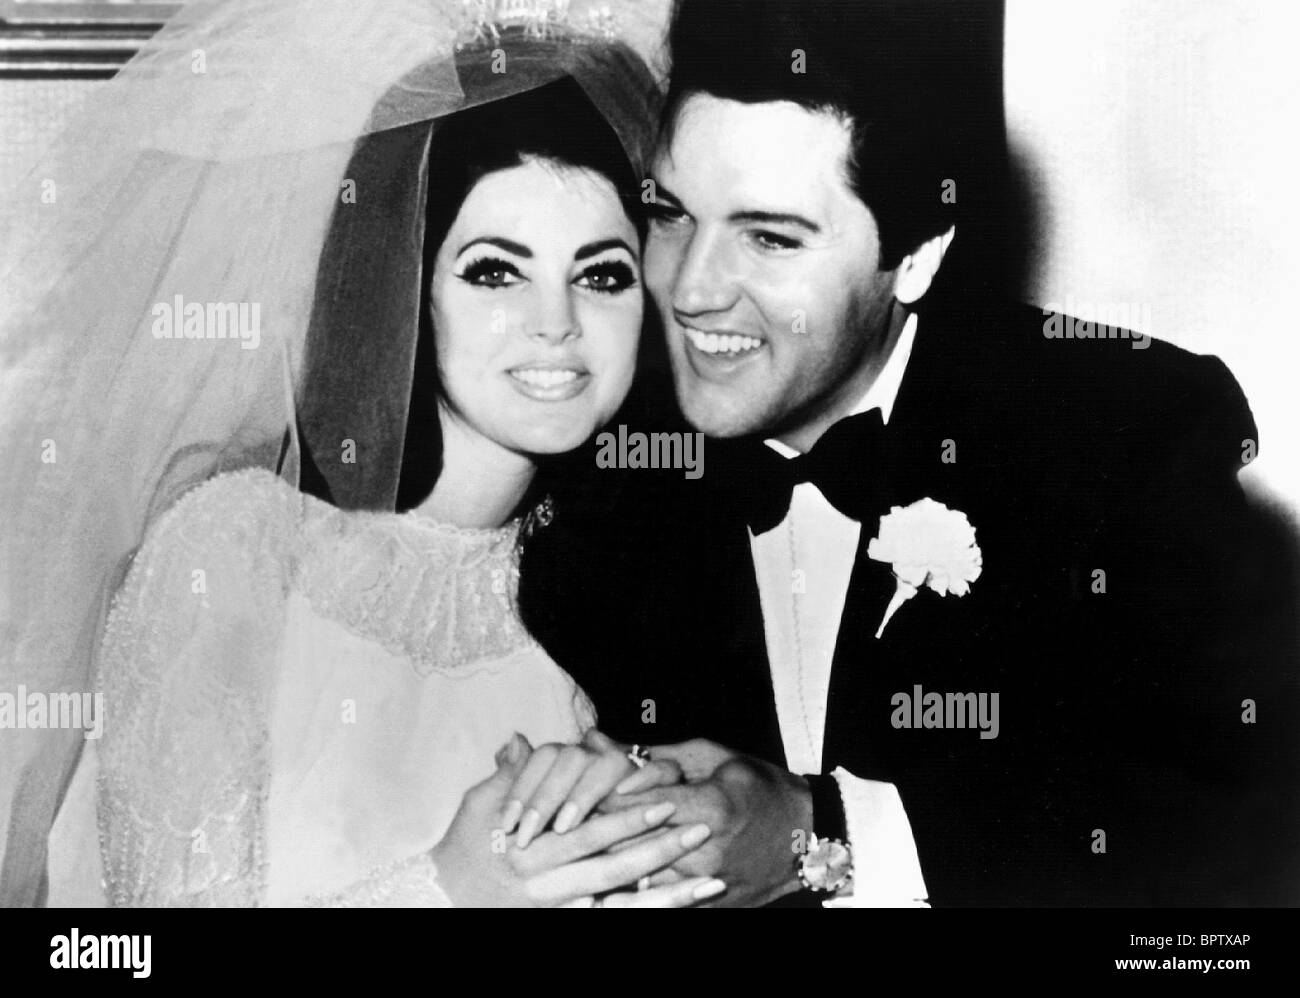 PRICILLA PRESLEY & ELVIS PRESLEY WIFE & HUSBAND (1967) - Stock Image